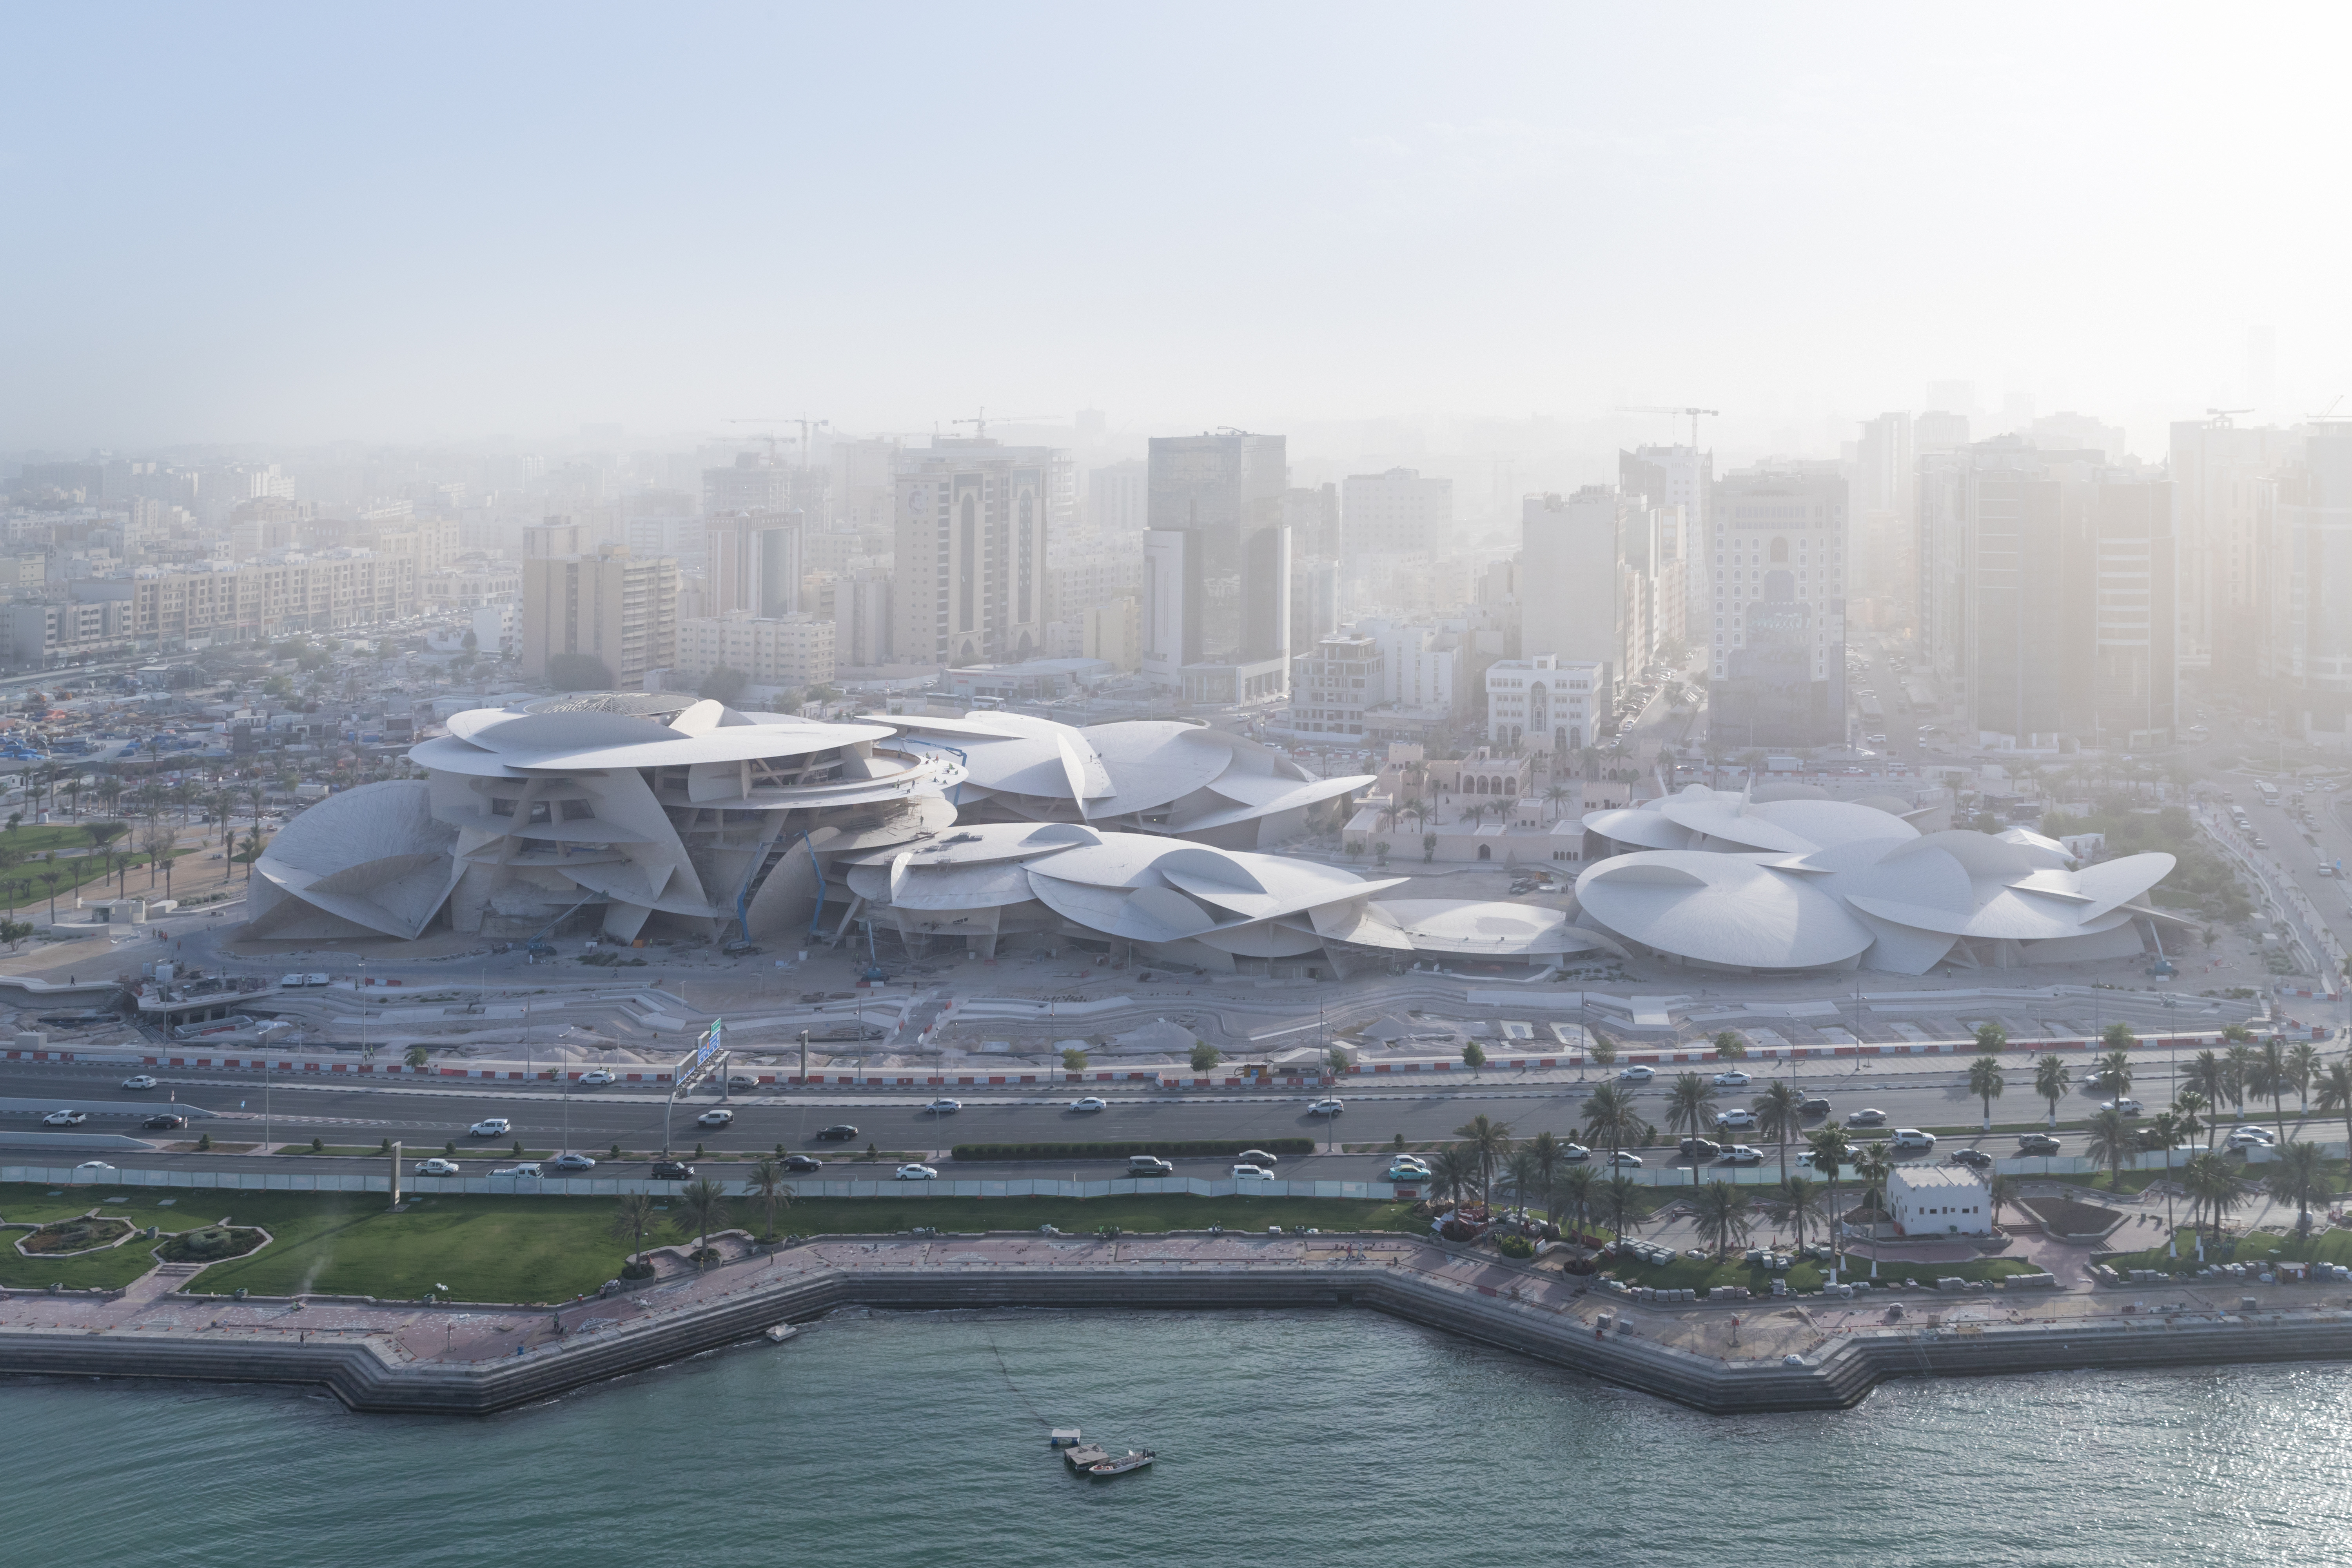 National Museum of Qatar has been designed by Pritzker Prize-winning architect Jean Nouvel. He drew inspiration from 'Desert Rose' while designing the architecture of the building. Photo courtesy: National Museum of Qatar